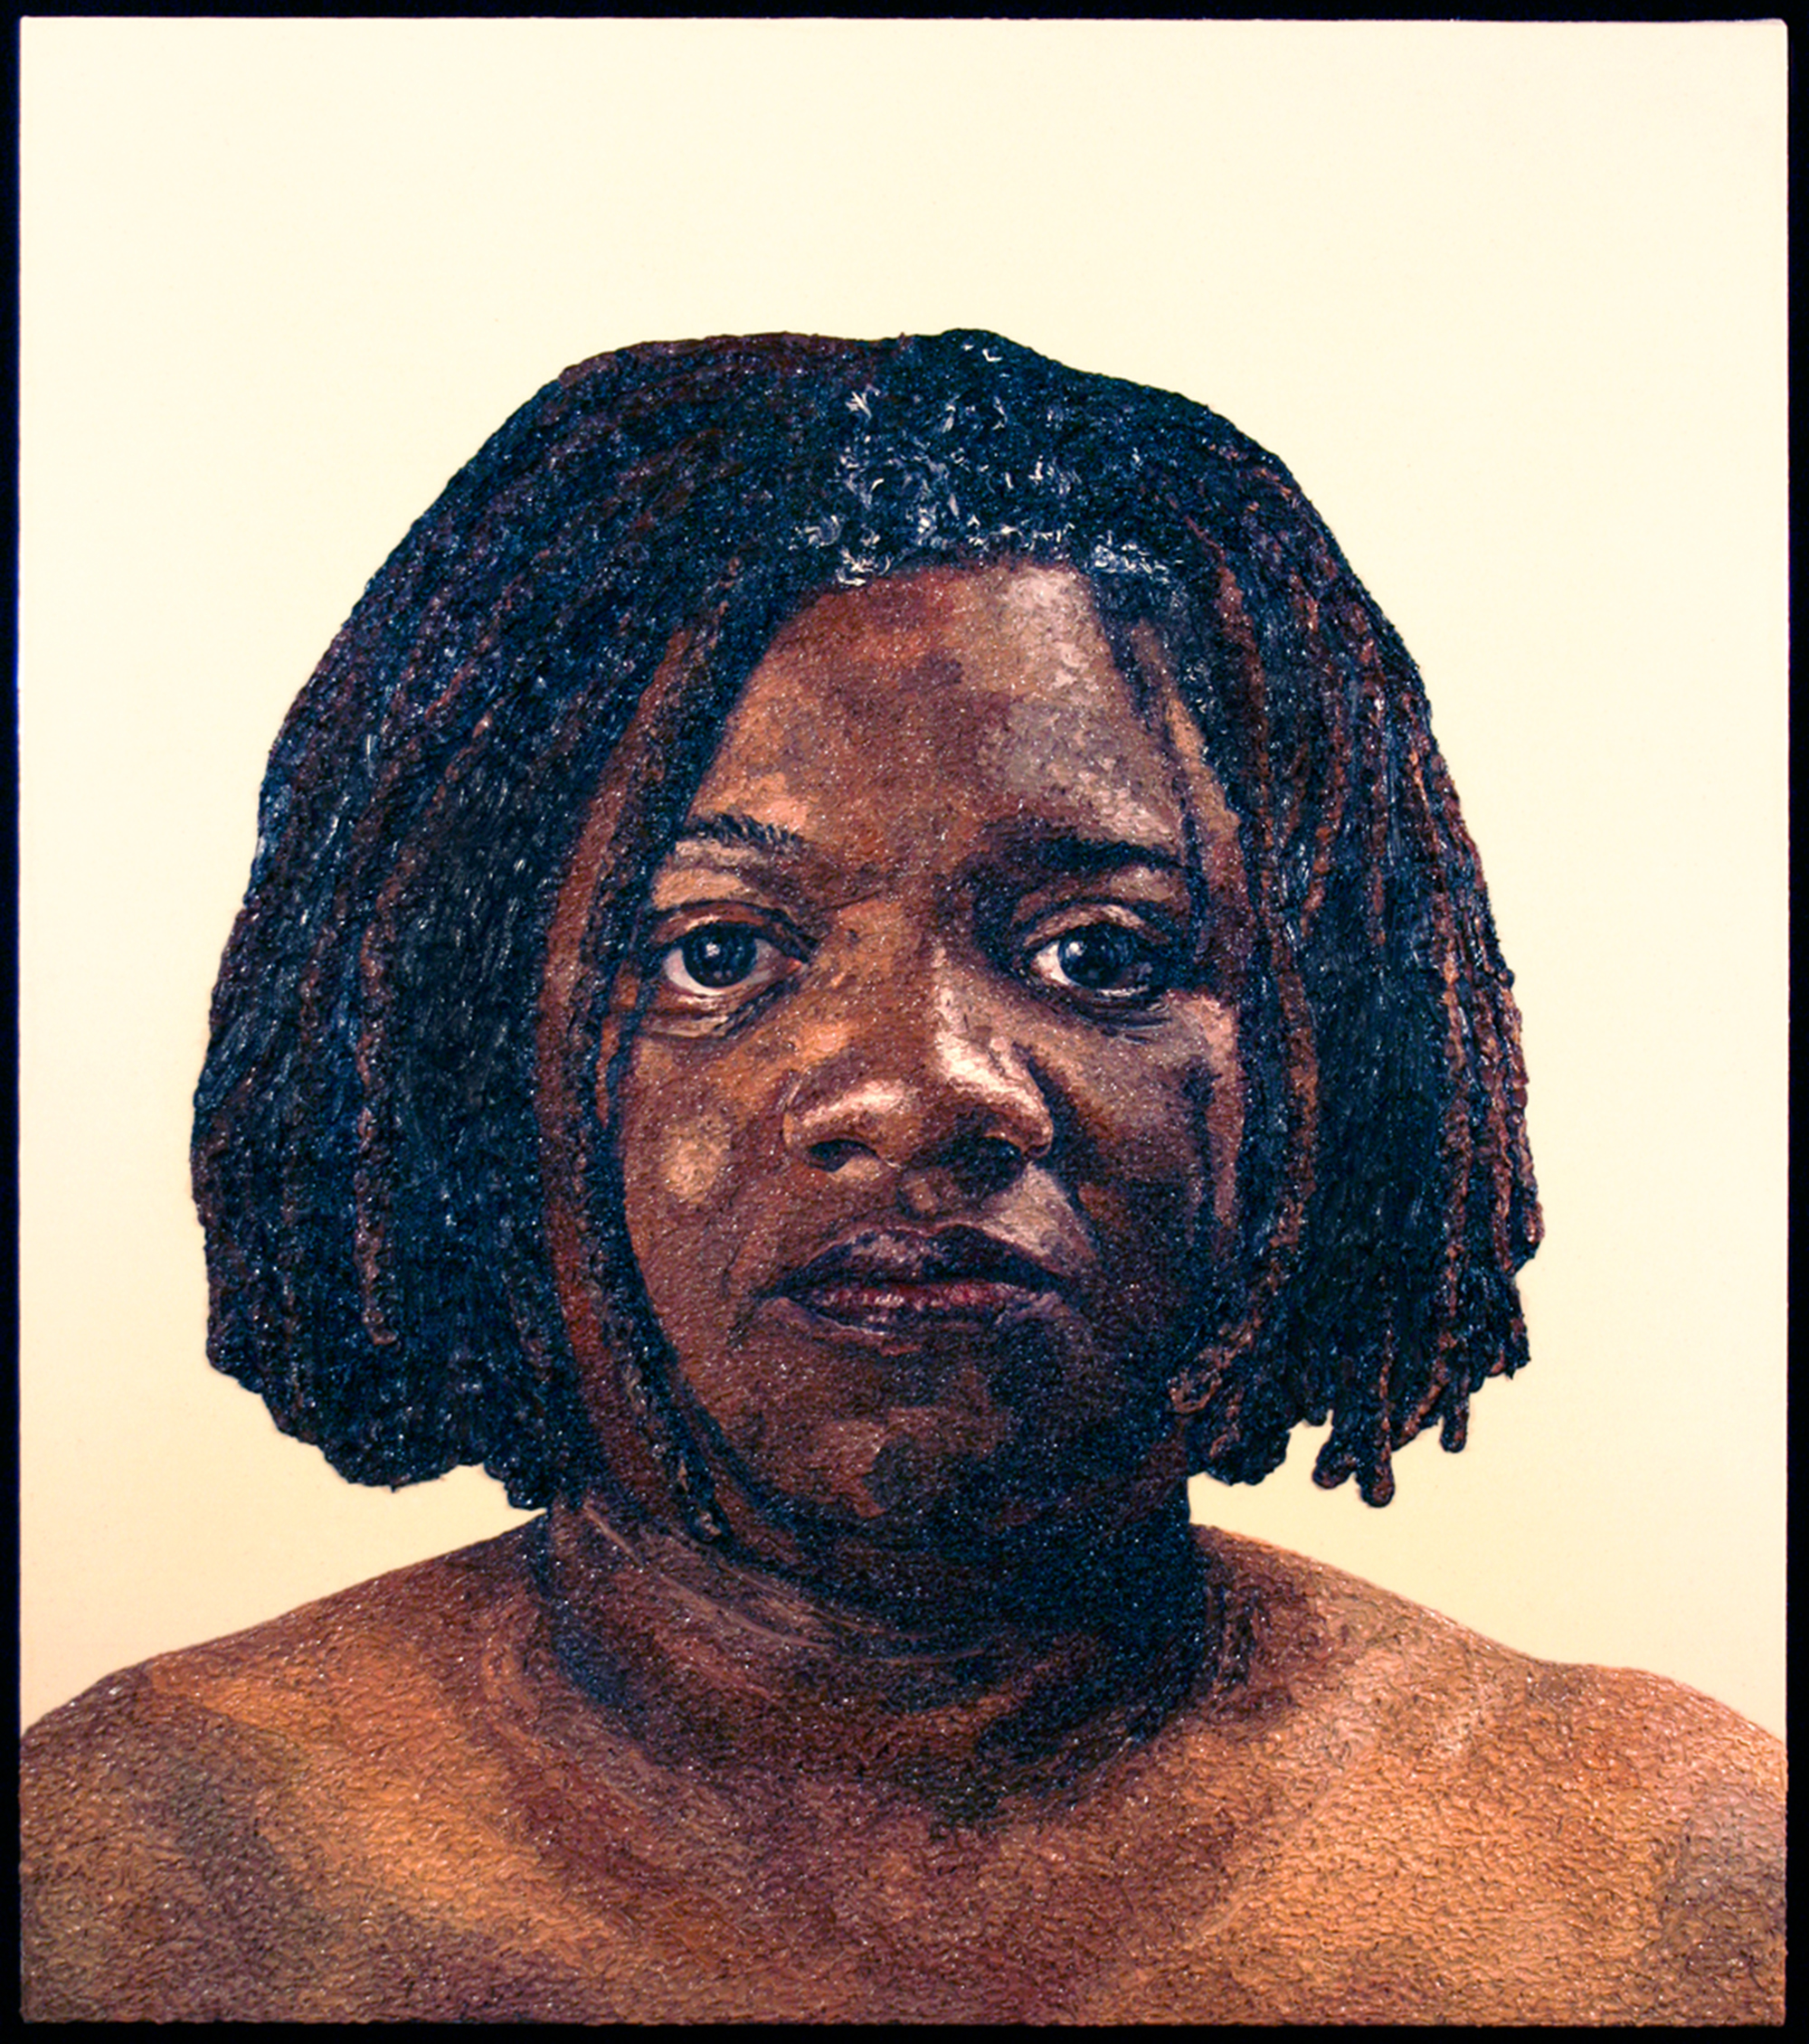 Beverly, 2008  |  48 x 42 inches  |  oil and urethane on canvas